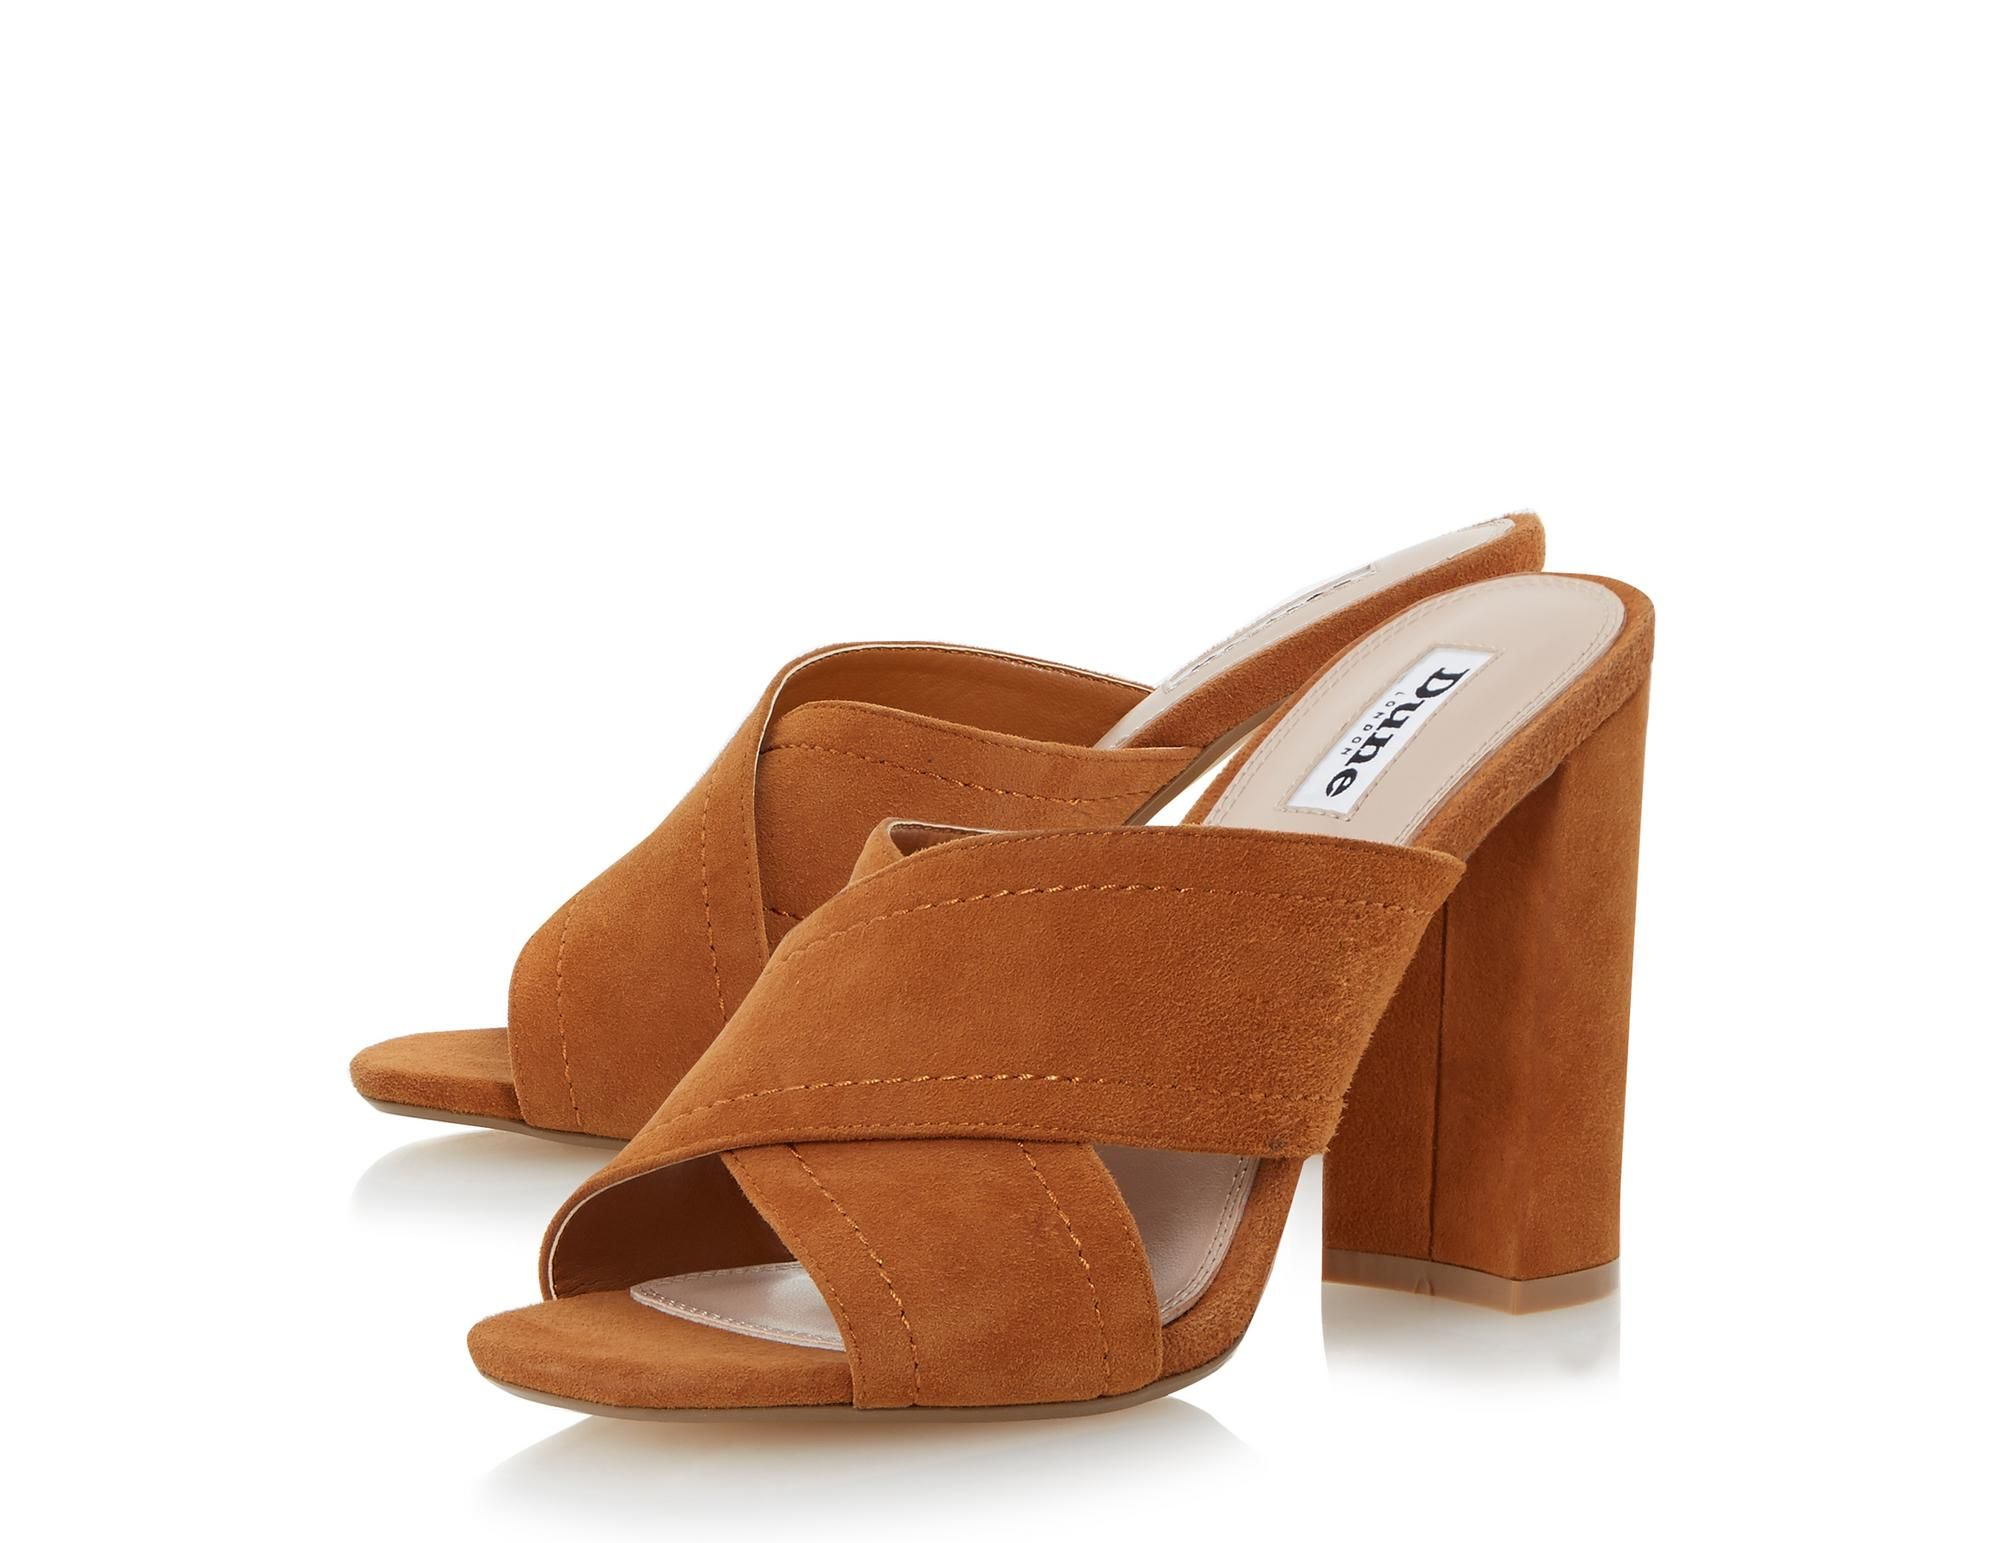 330d03f730fcc0 The classic mule sandal makes another come back for the summer season. This  slip on style features a cross strap vamp and high block heel.